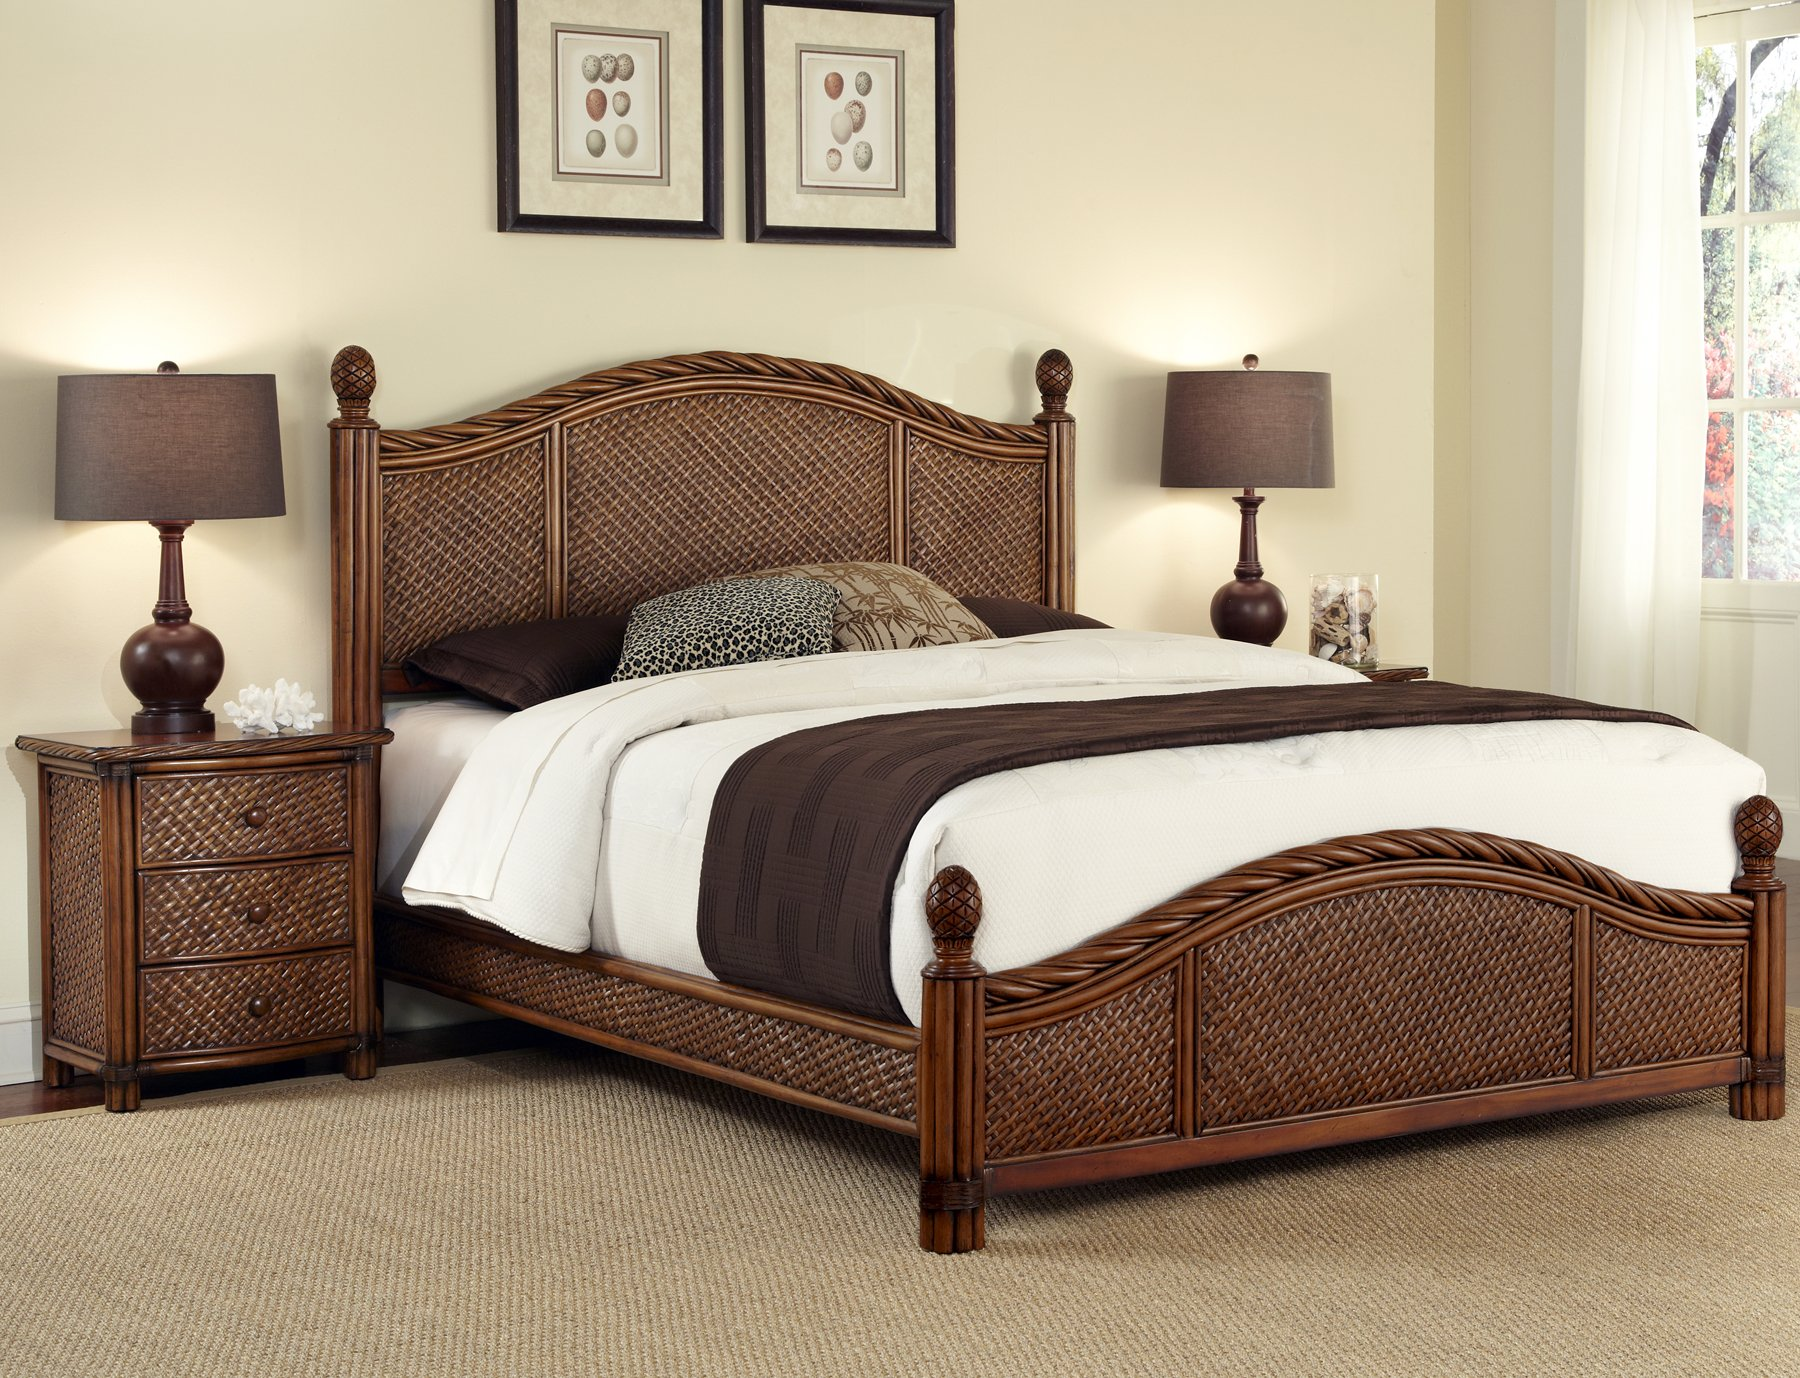 Home Styles Marco Island Queen Bed and